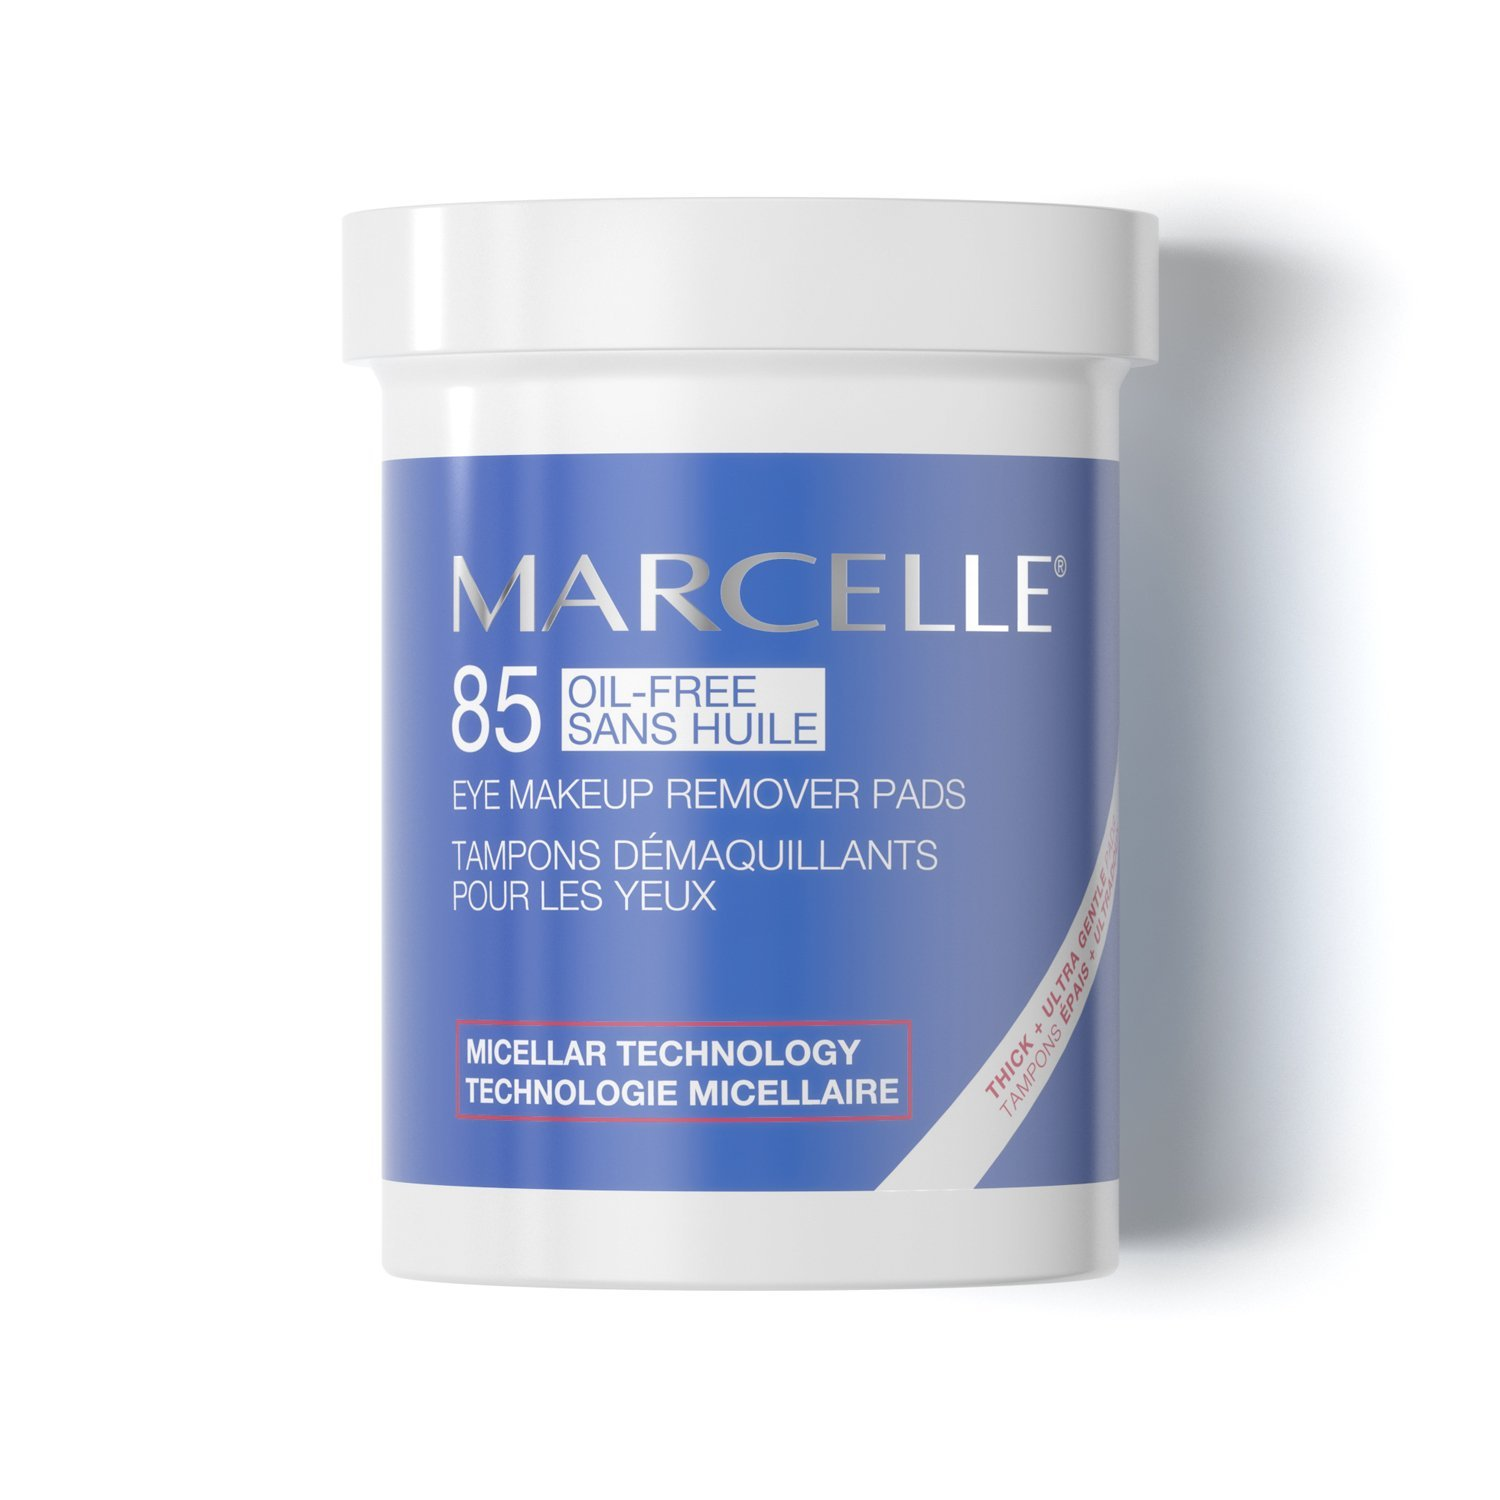 Marcelle Oil-Free Eye Makeup Remover Pads, 85 Pads : Beauty